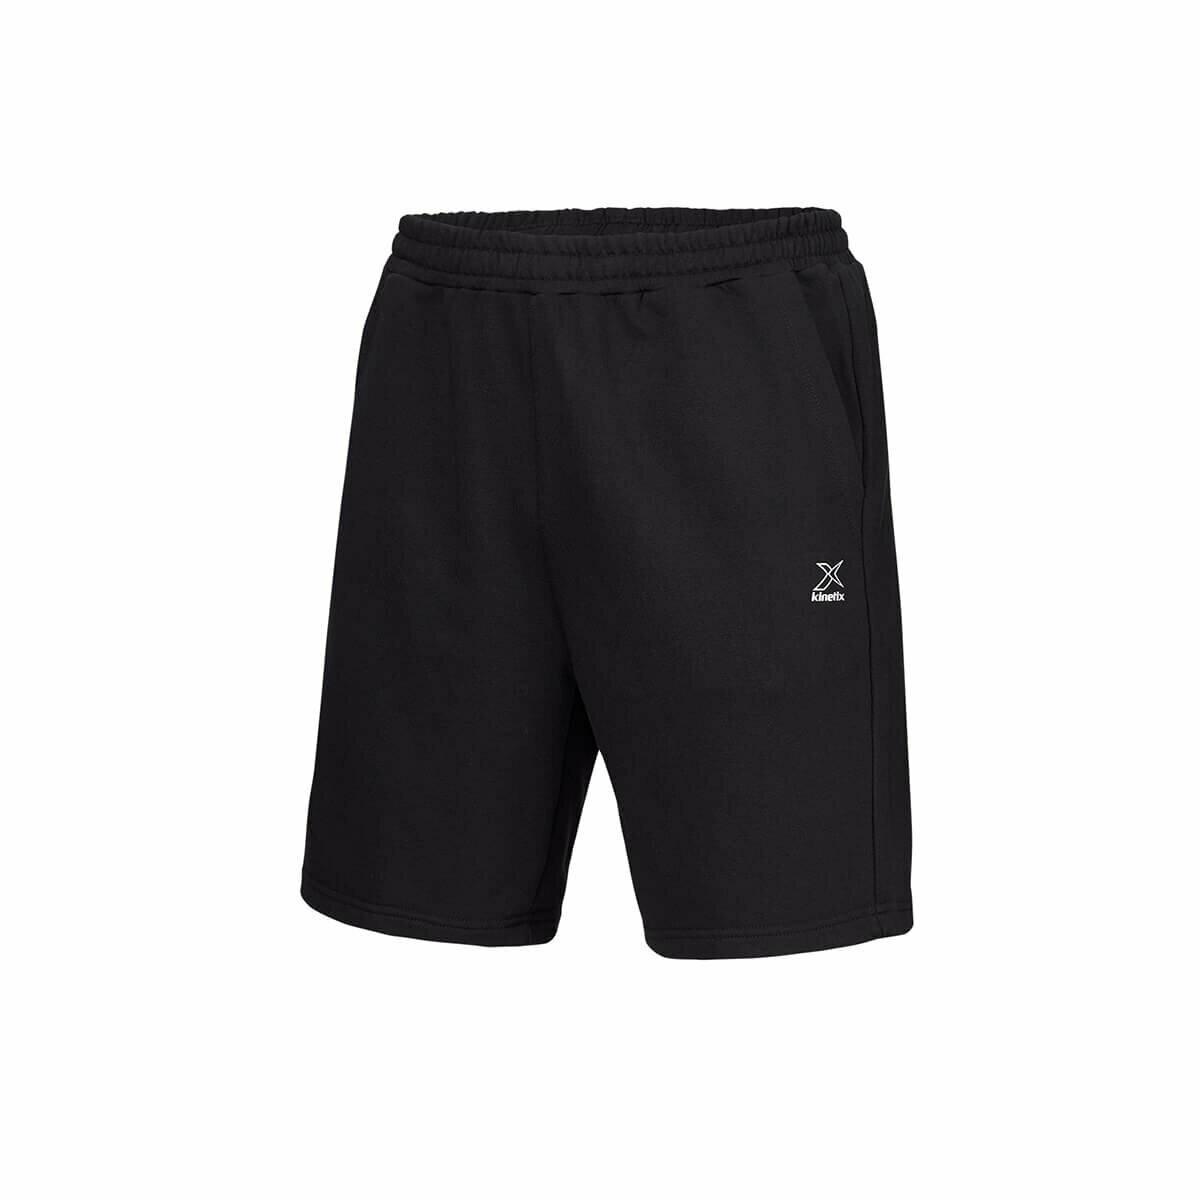 FLO BASIC SHORT Navy Blue Melange Male Shorts KINETIX